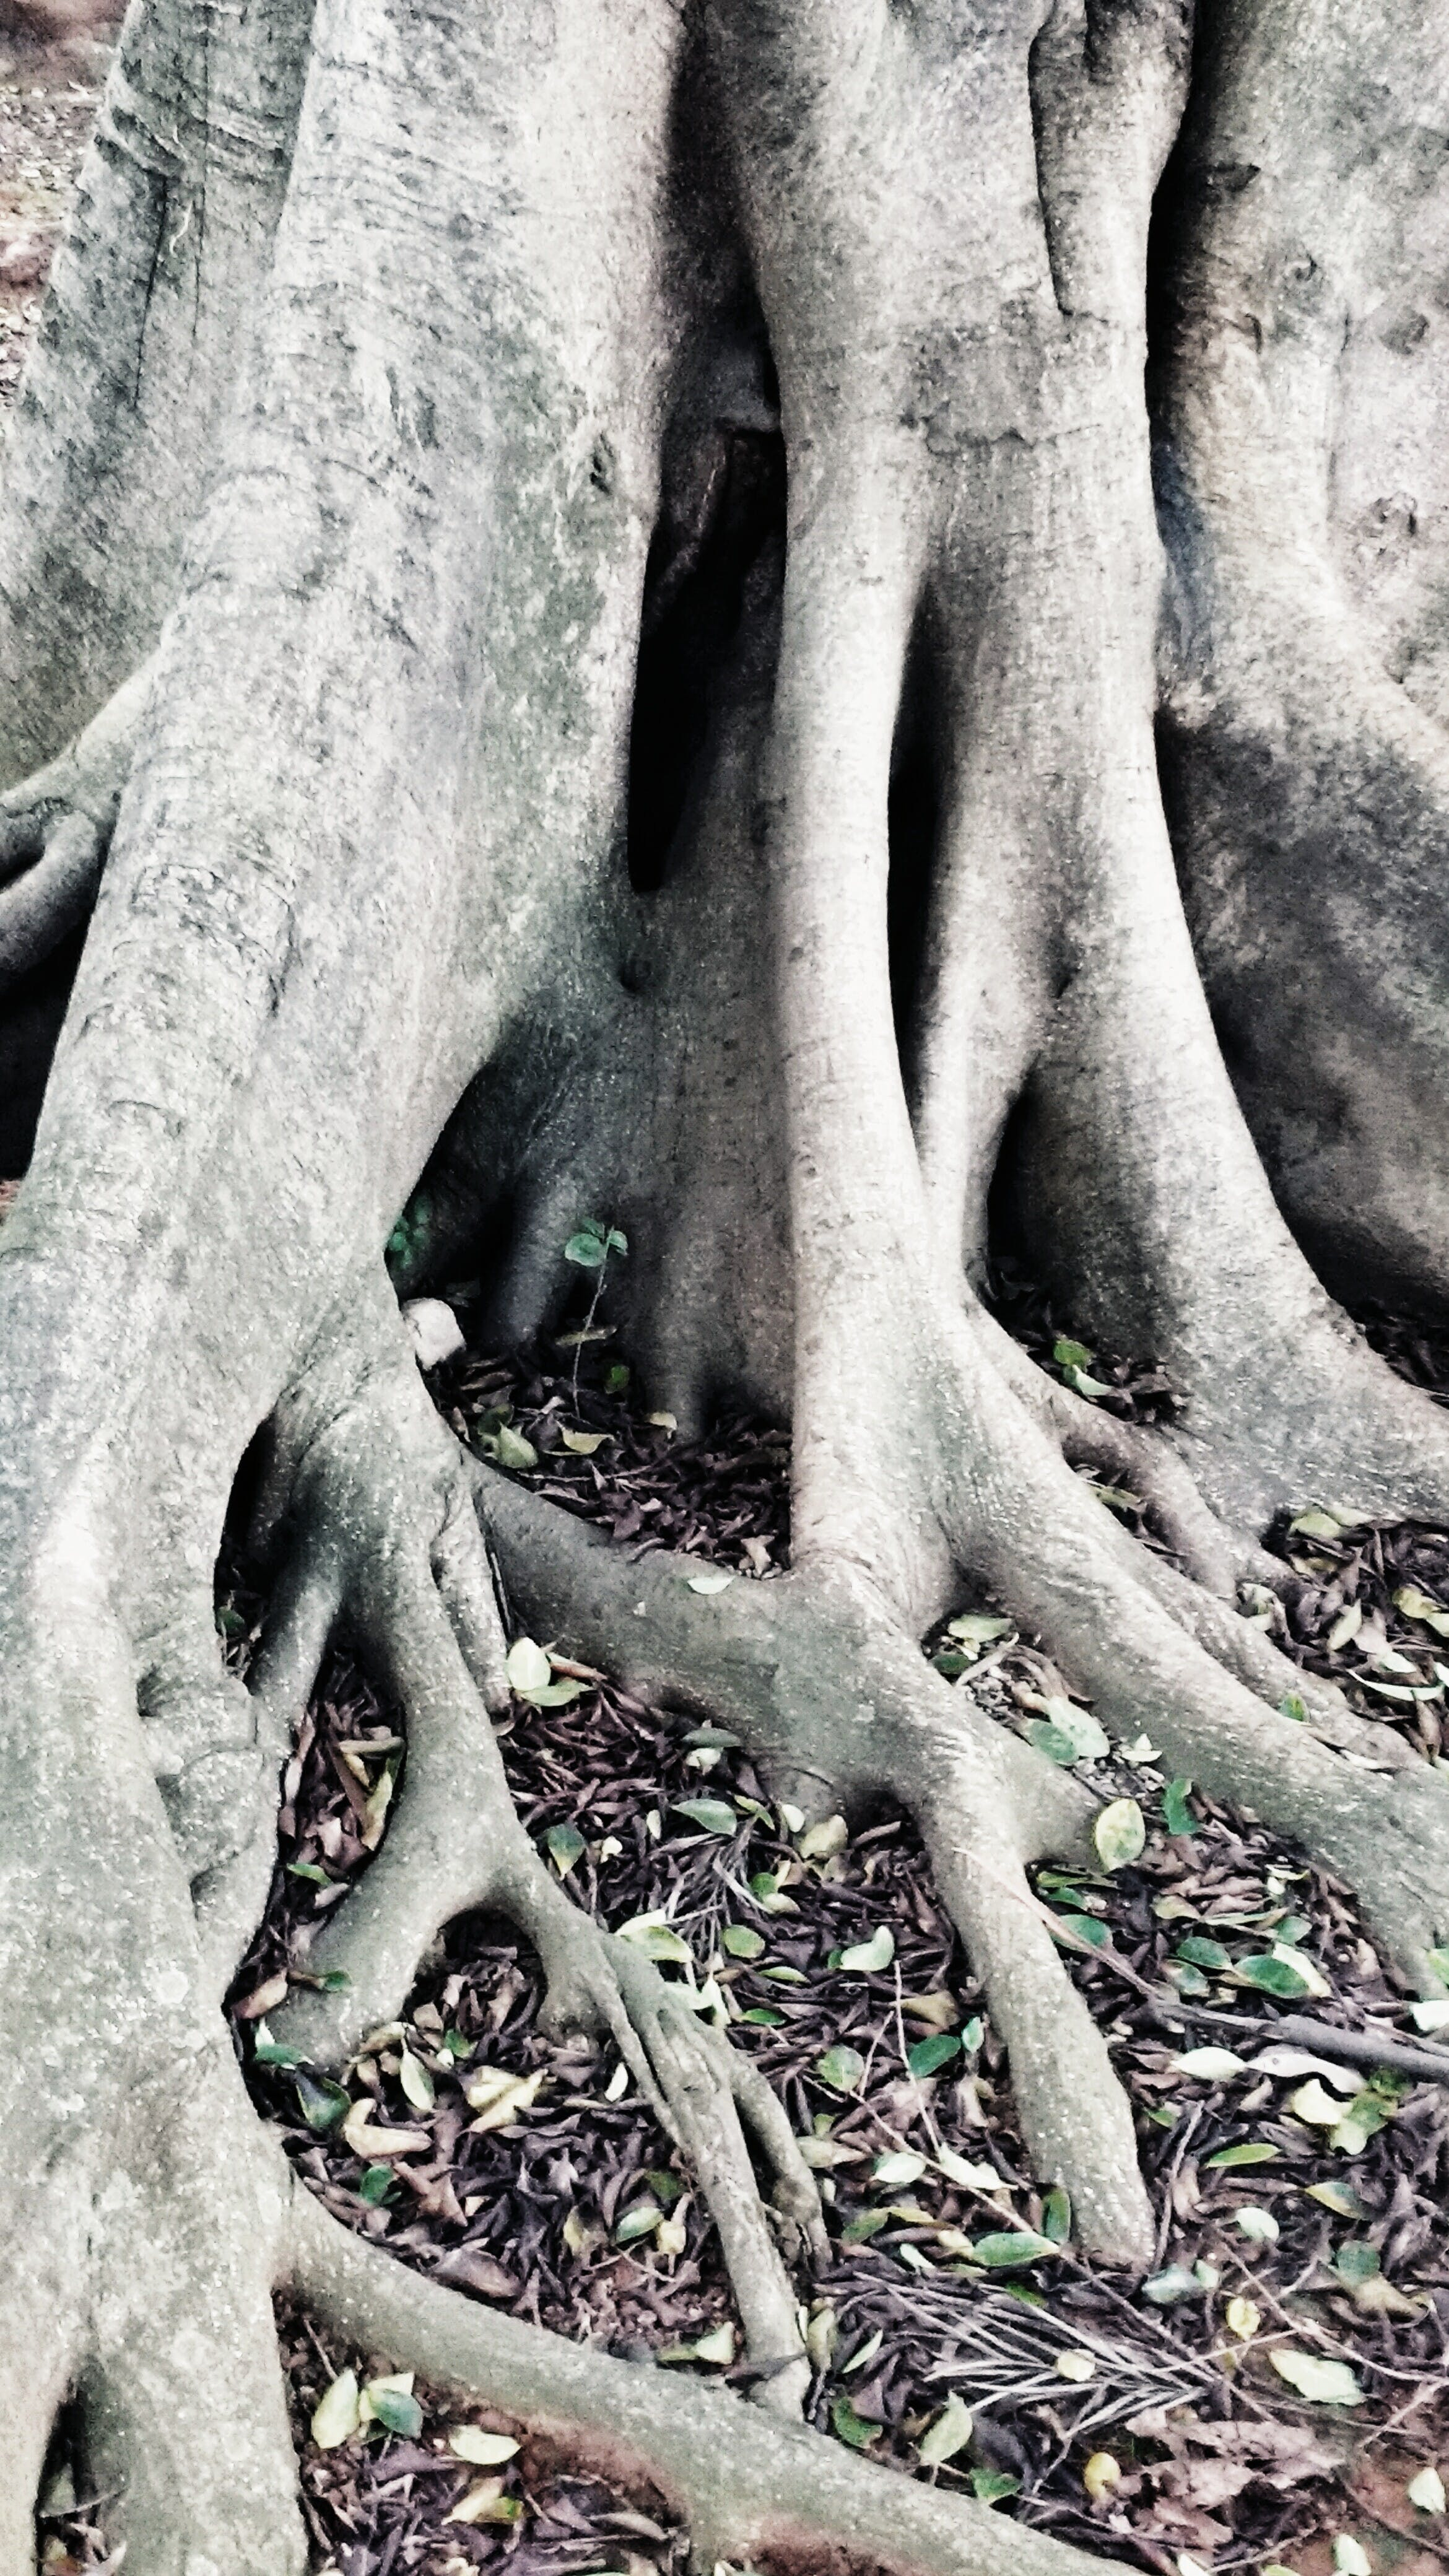 Free stock photo of trunks, roots